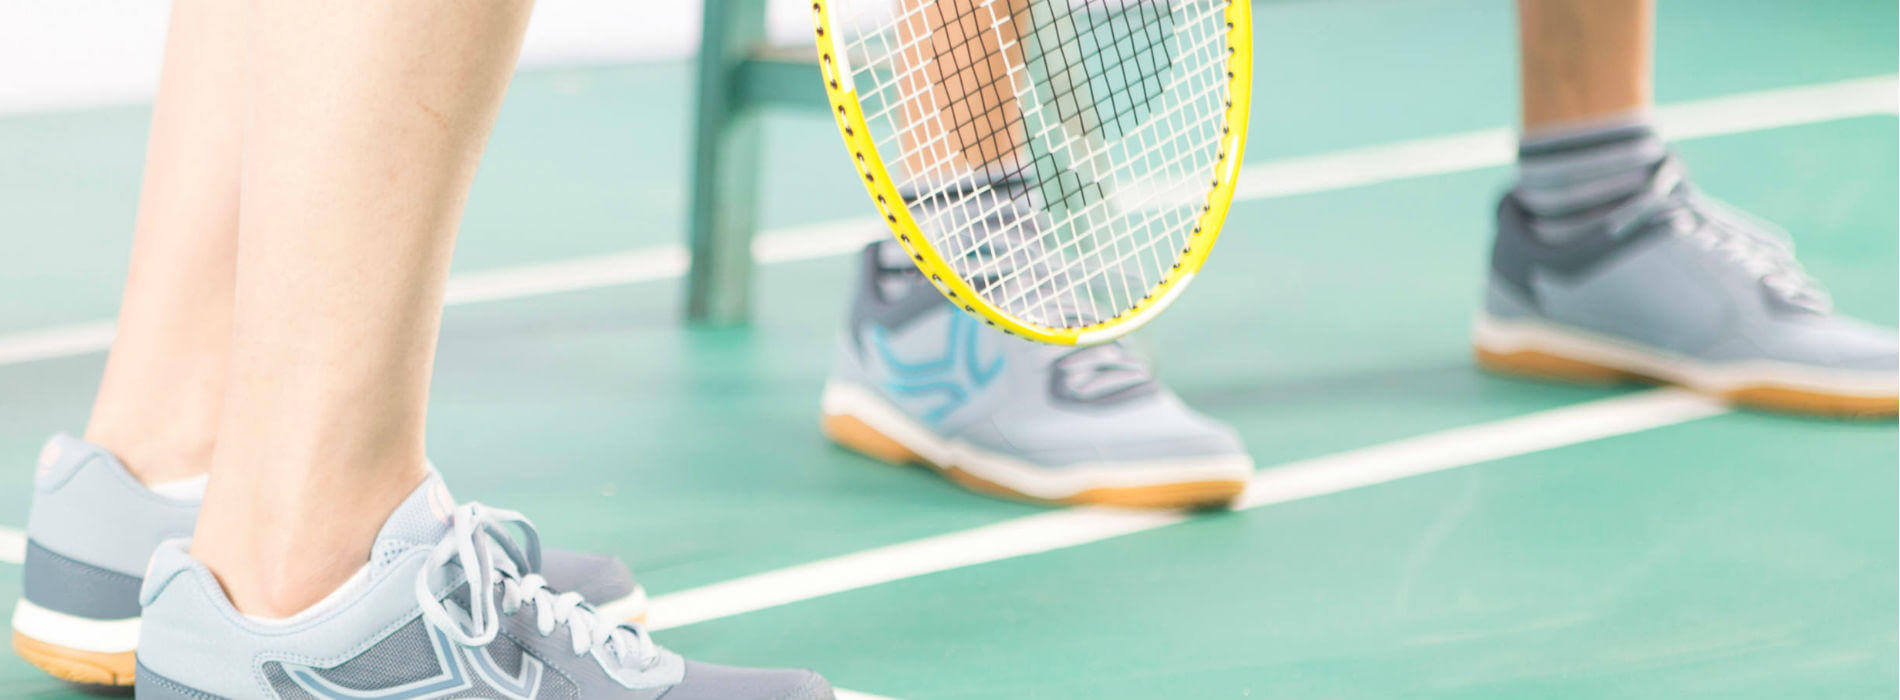 How To Choose Your Badminton Shoes?